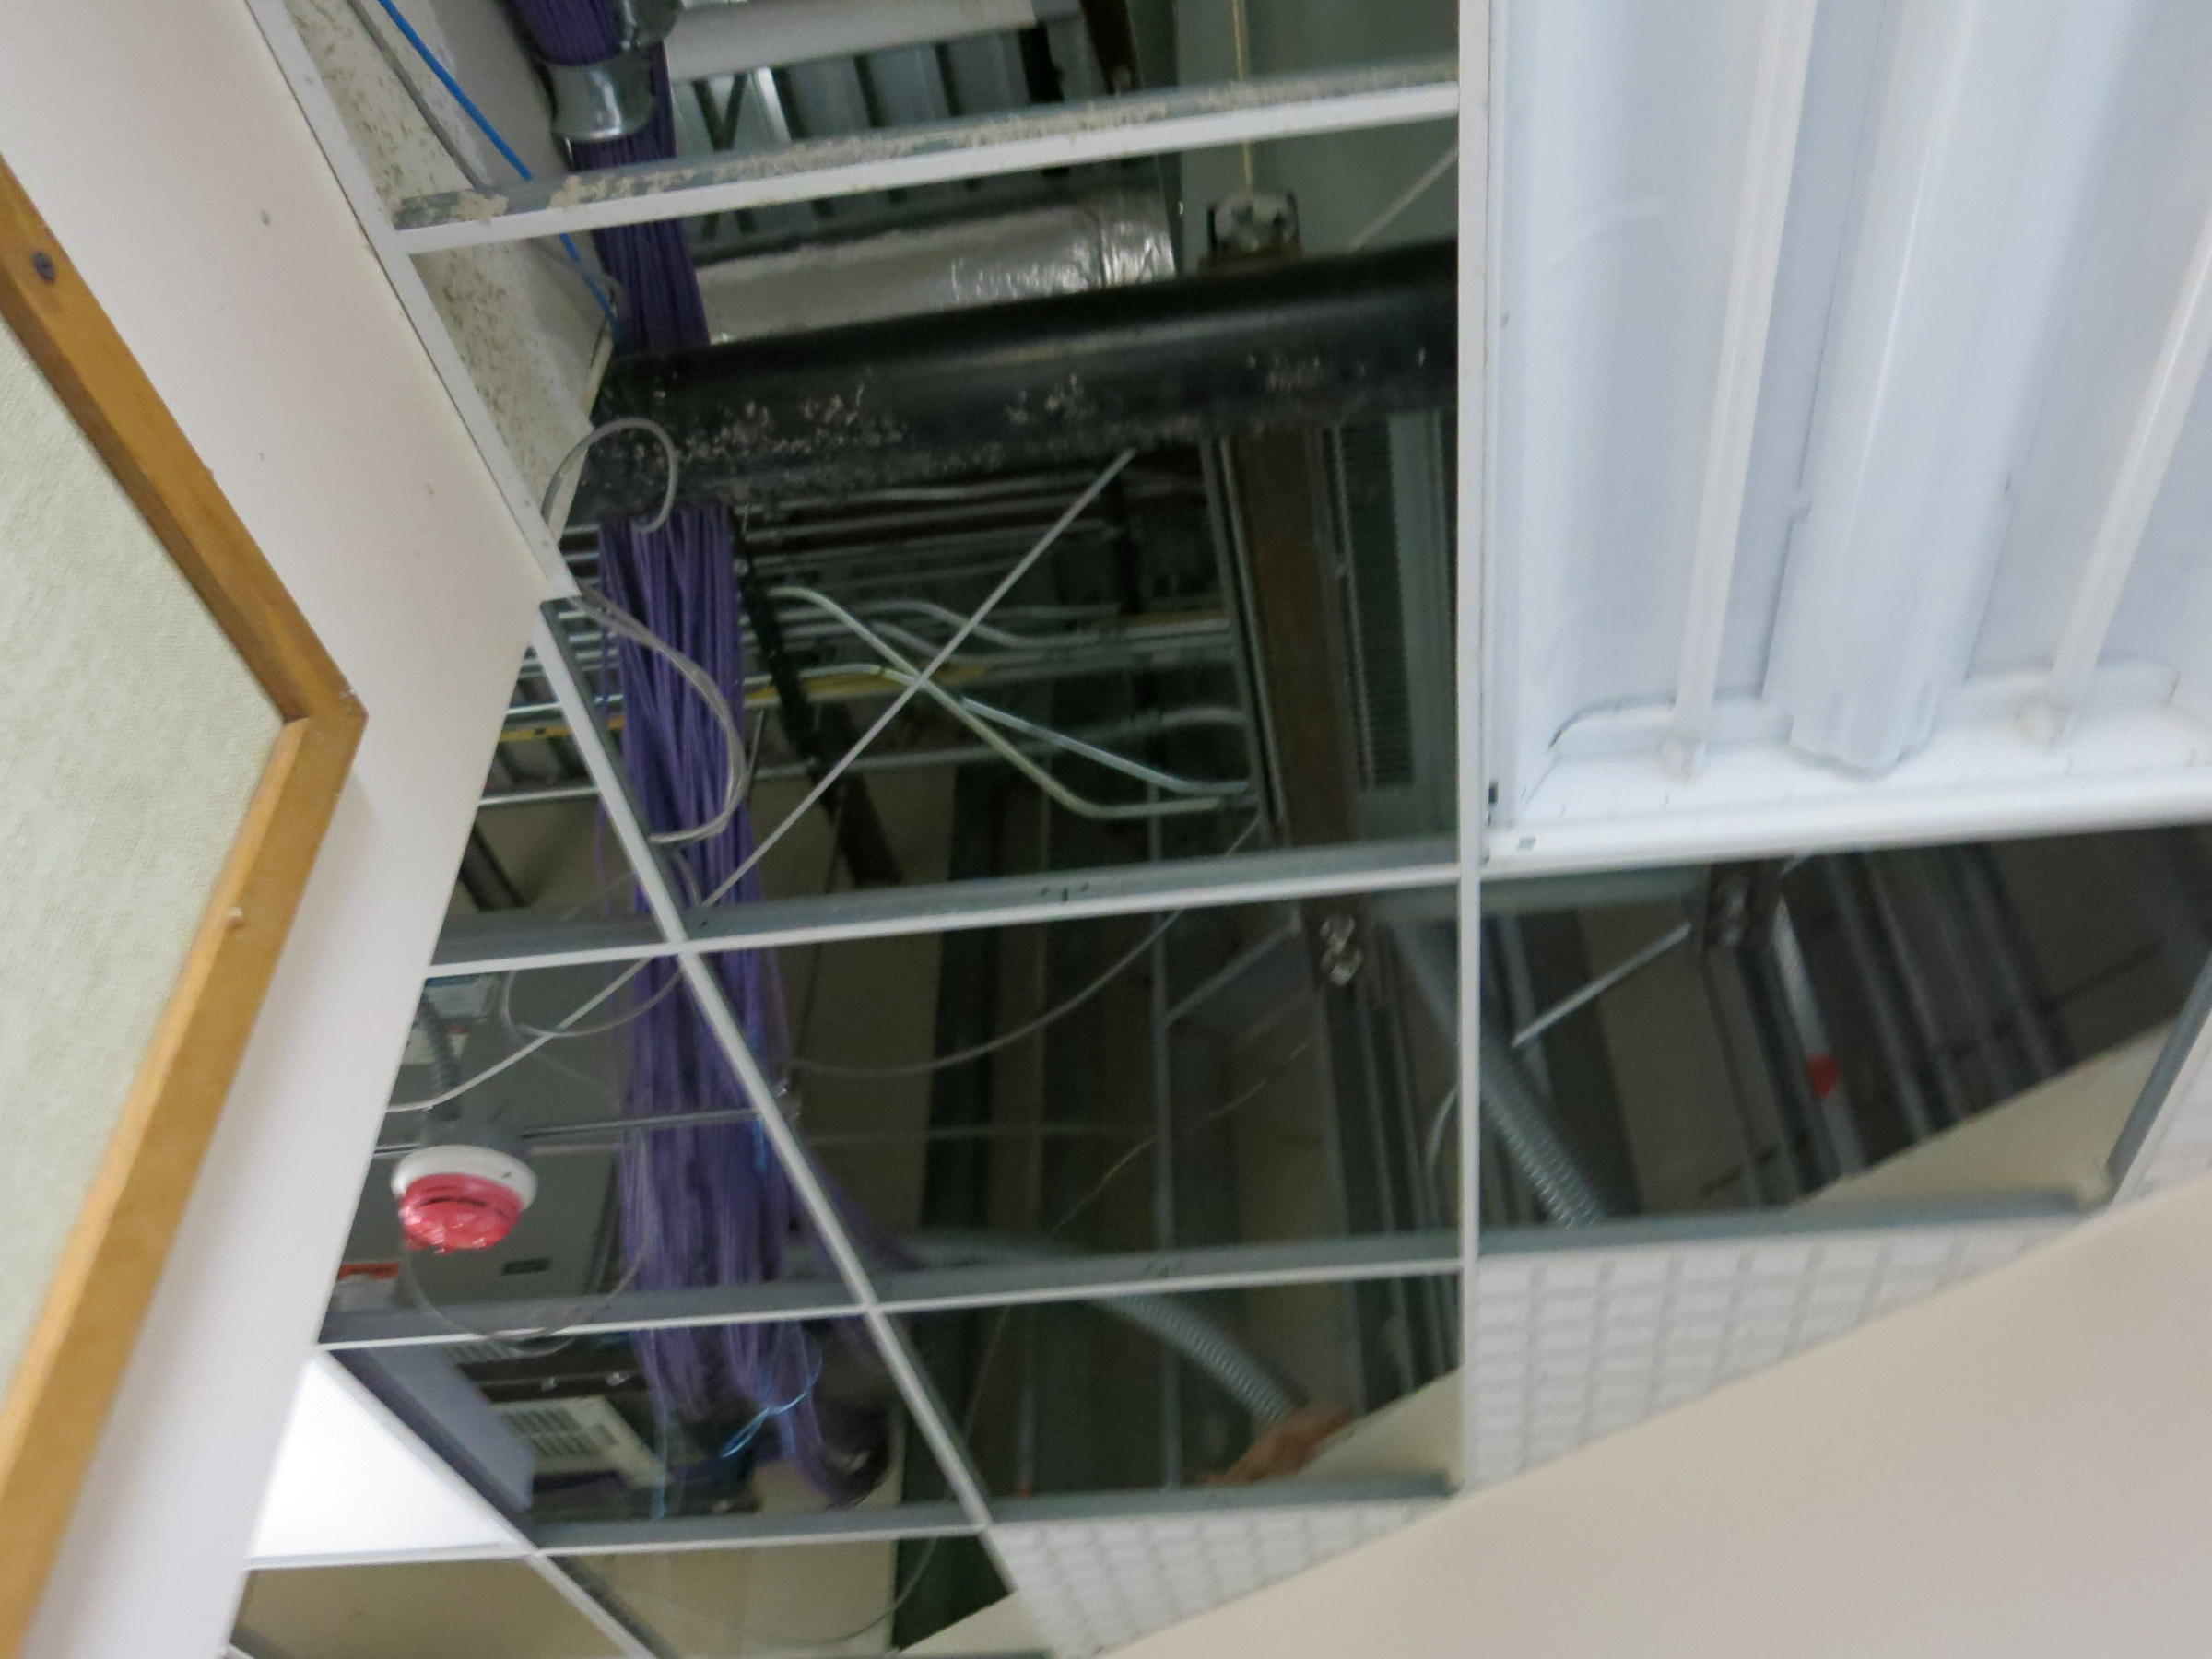 Bettendorf library reopens after water damage wvik ceiling tiles were removed doublecrazyfo Choice Image